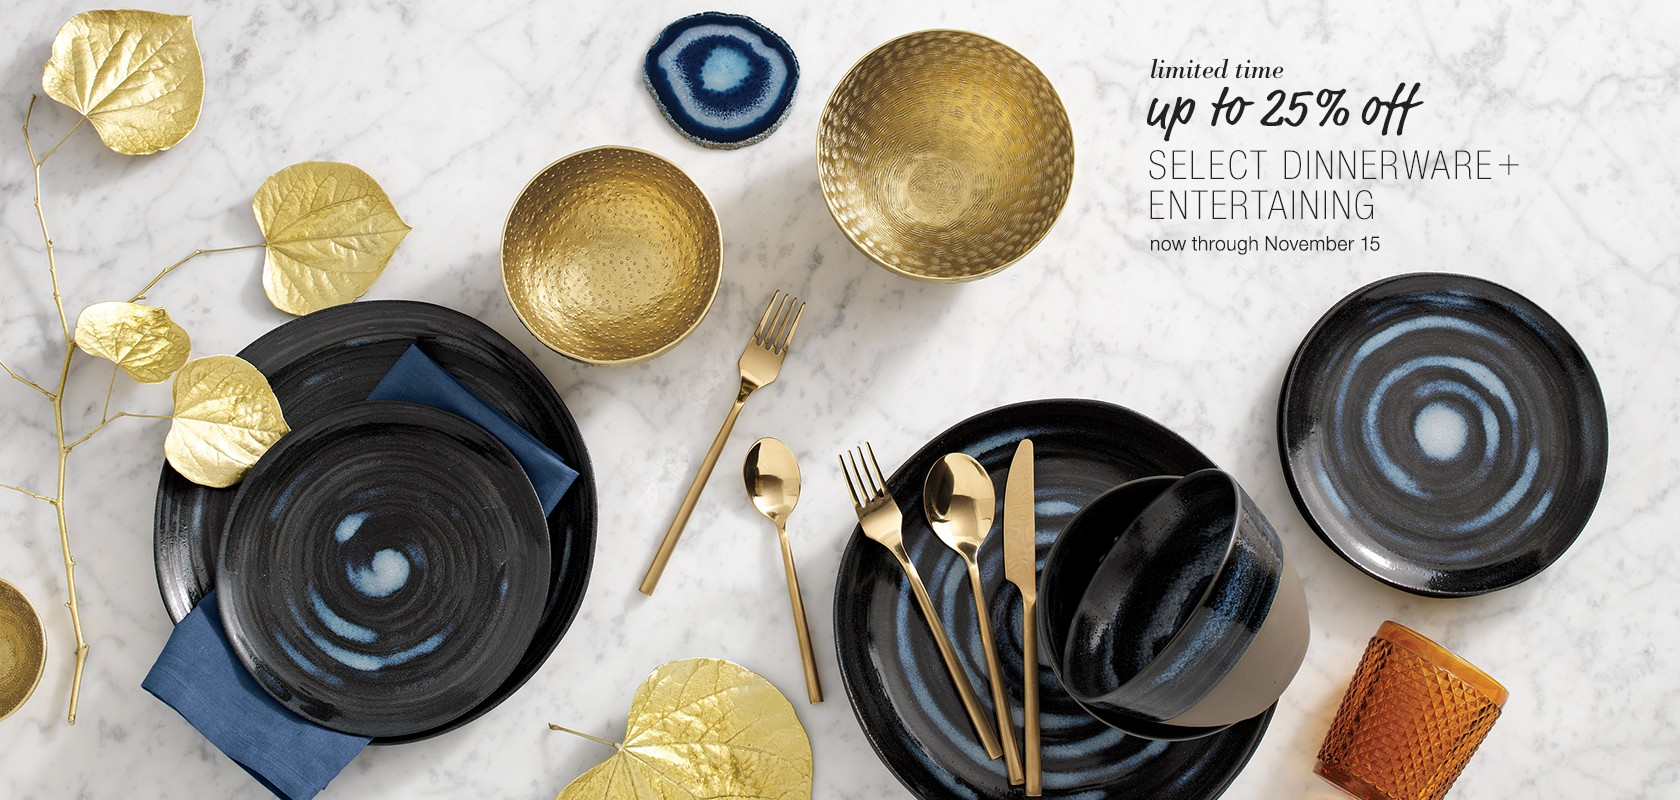 Up to 25% off select dinnerware and entertaining